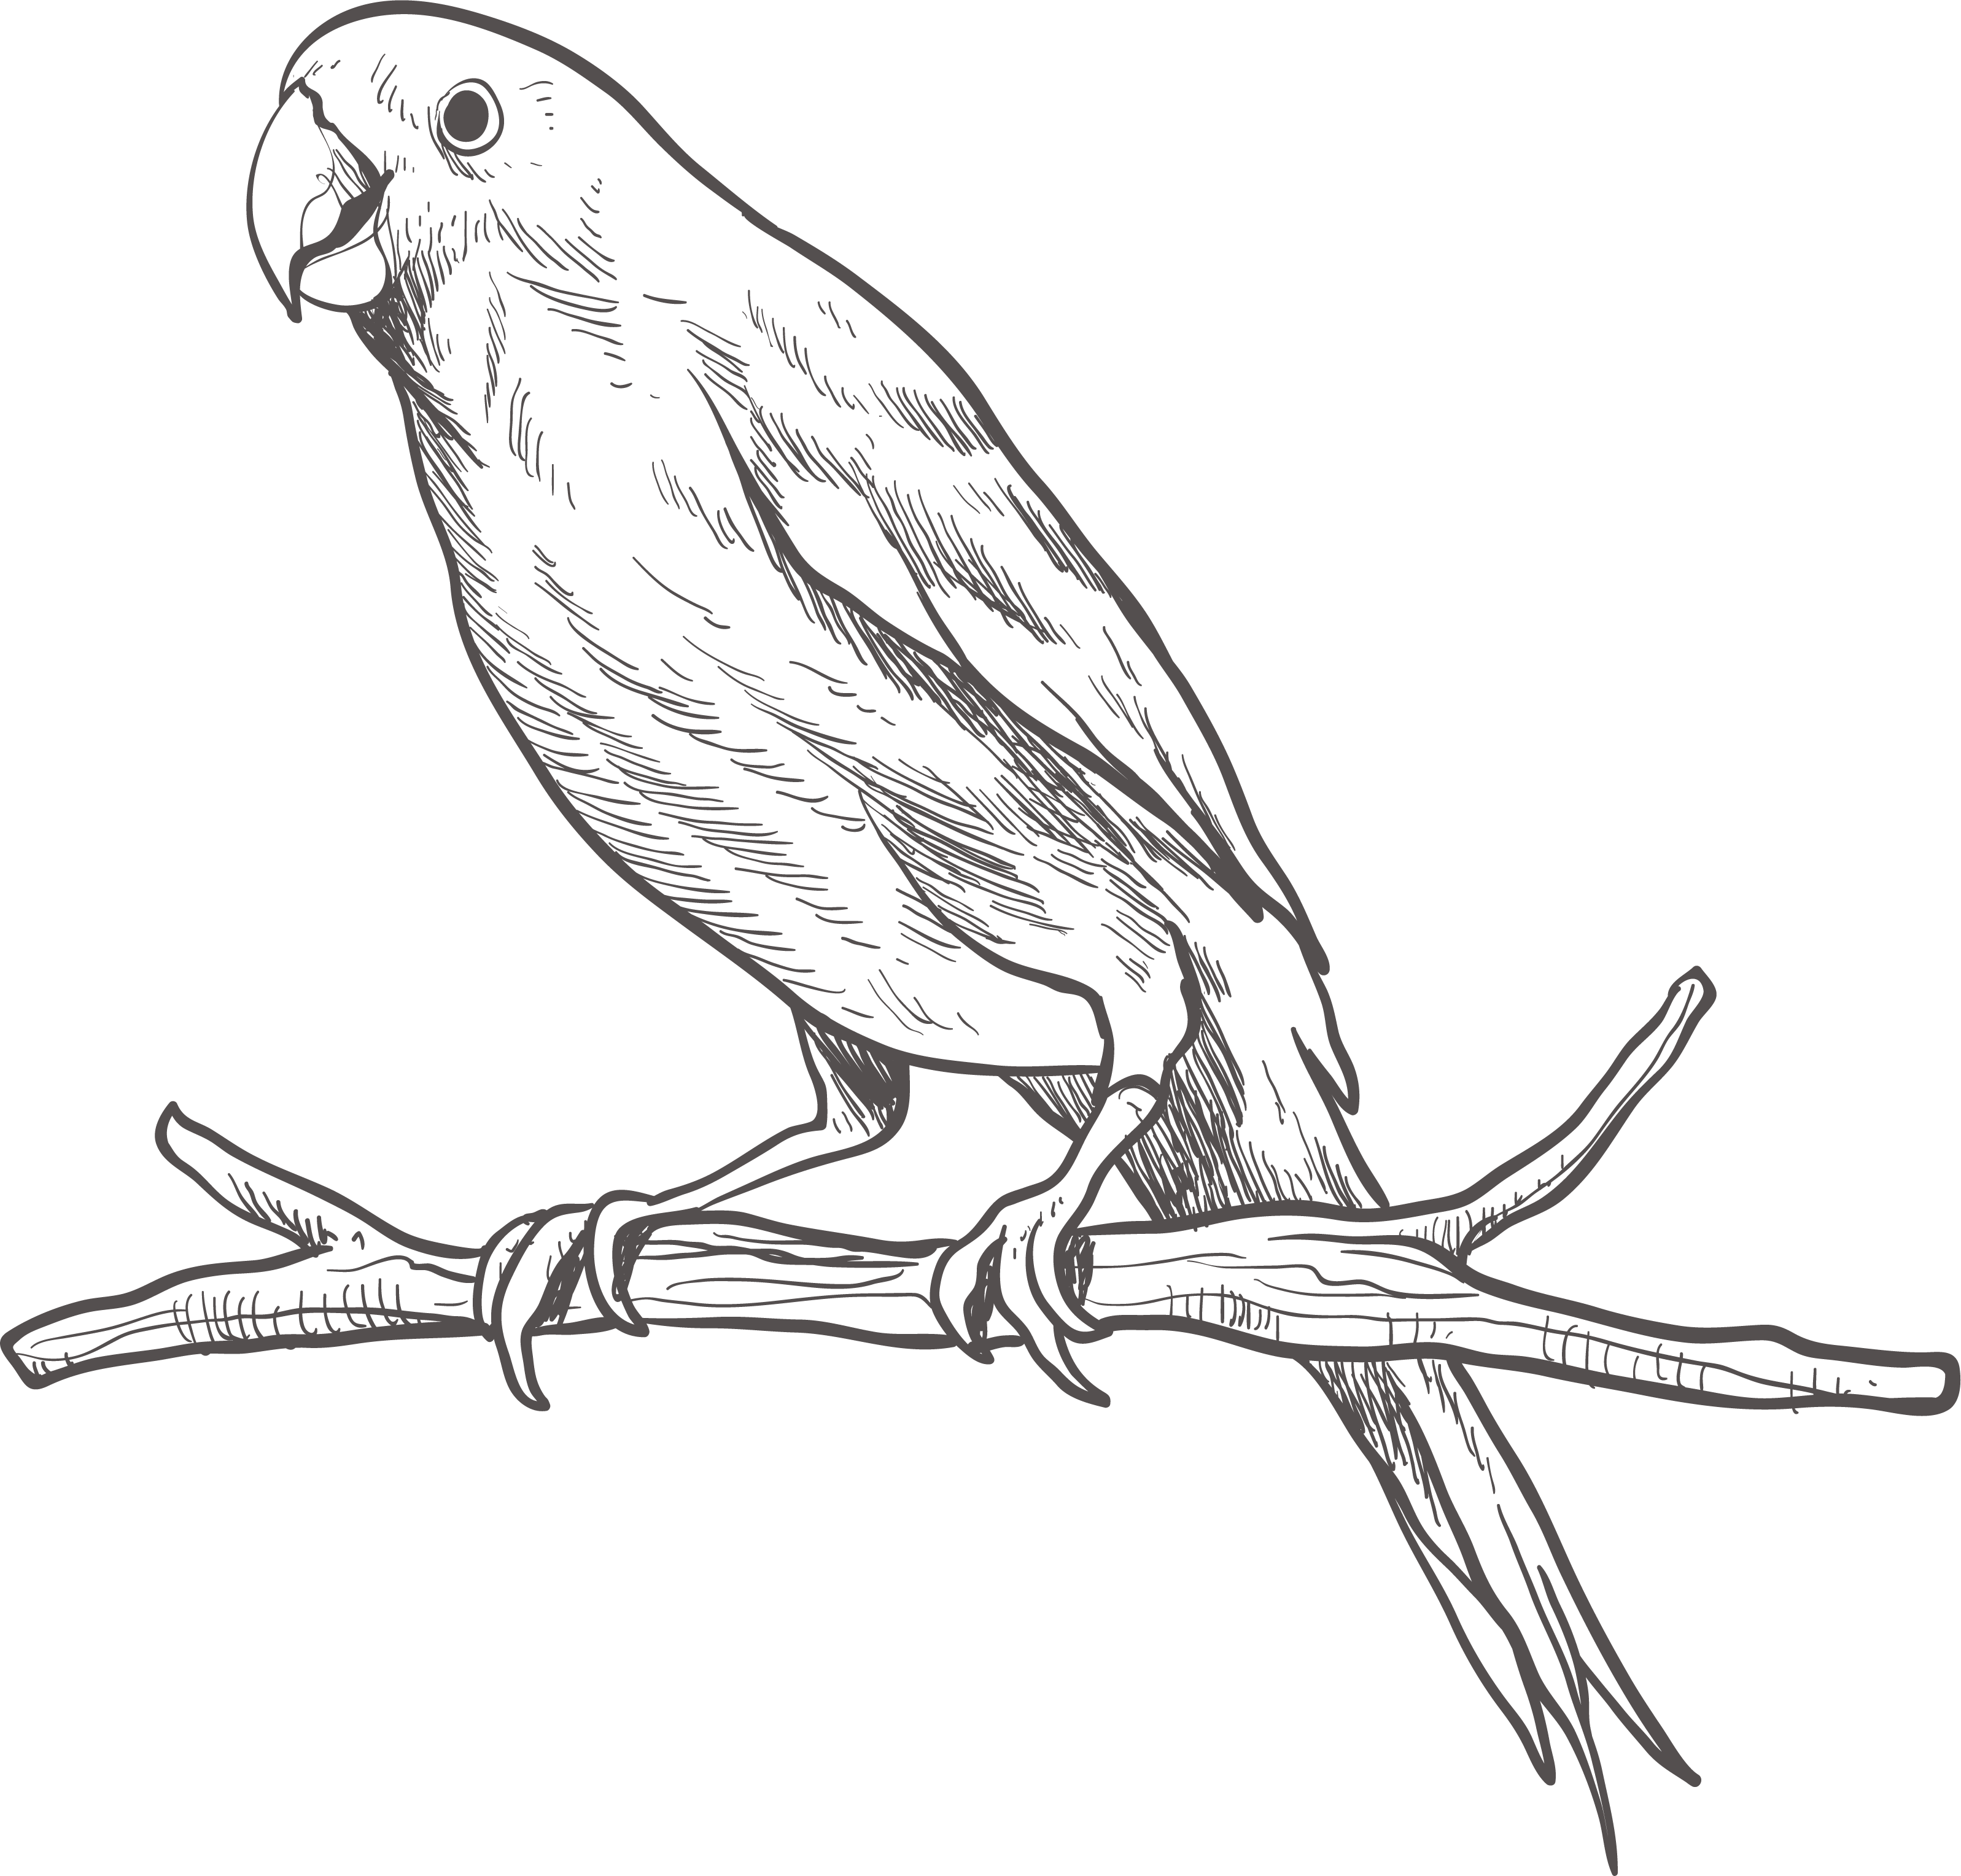 Download Parrot Bird Parakeet Sketch Parrot Black And White Png Full Size Png Image Pngkit